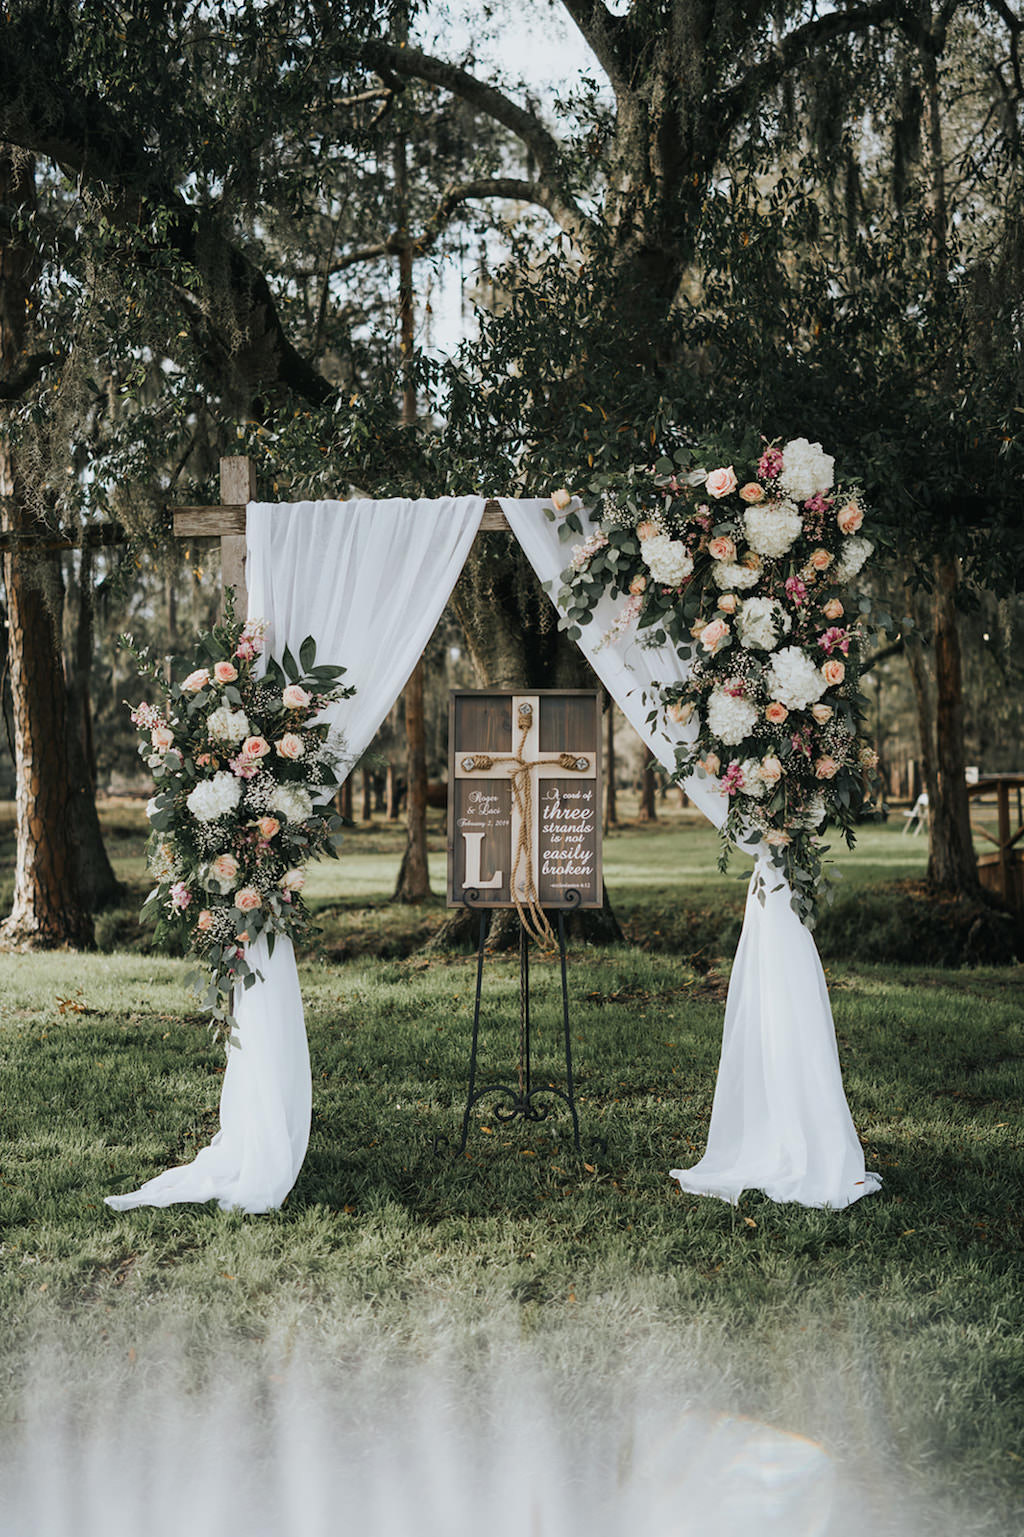 Rustic Chic Outdoor Wedding Ceremony Decor, Arch with White Linen Draping and White Hydrangeas, Blush Pink Roses and Greenery Floral Arrangement   Tampa Wedding Venue Rafter J Ranch   Wedding Planner Kelly Kennedy Weddings and Events